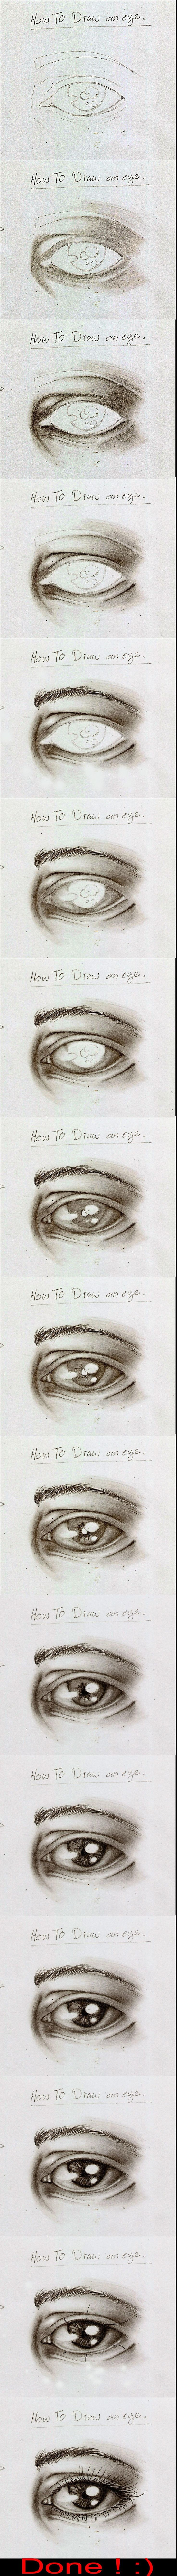 best Eye drawing reference.....Art Ed Central